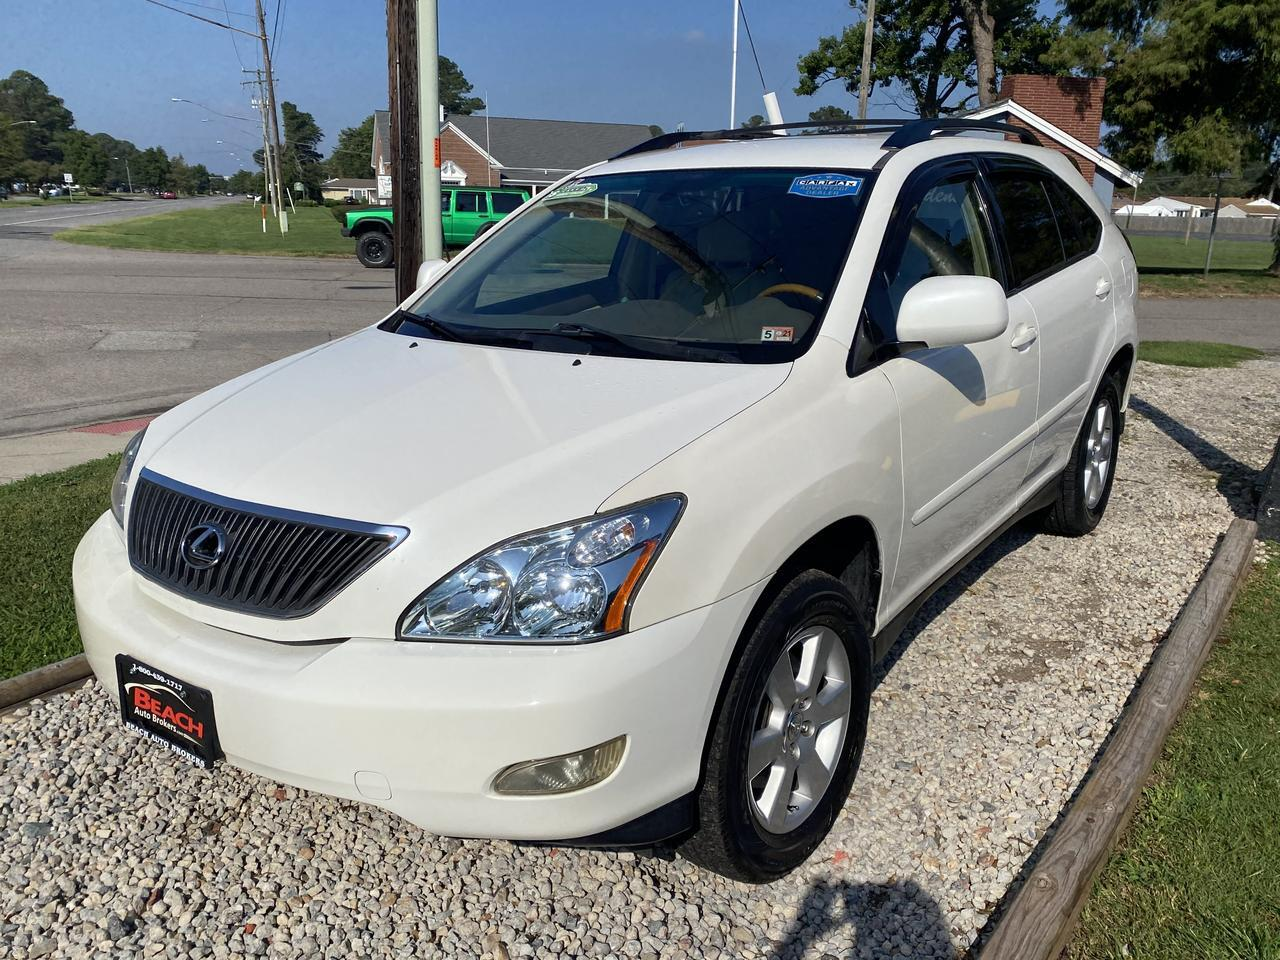 2005 LEXUS RX330 WARRANTY, SATELLITE RADIO, 6 DISC CD PLAYER,  CRUISE CONTROL, A/C, LOW MILES! Norfolk VA